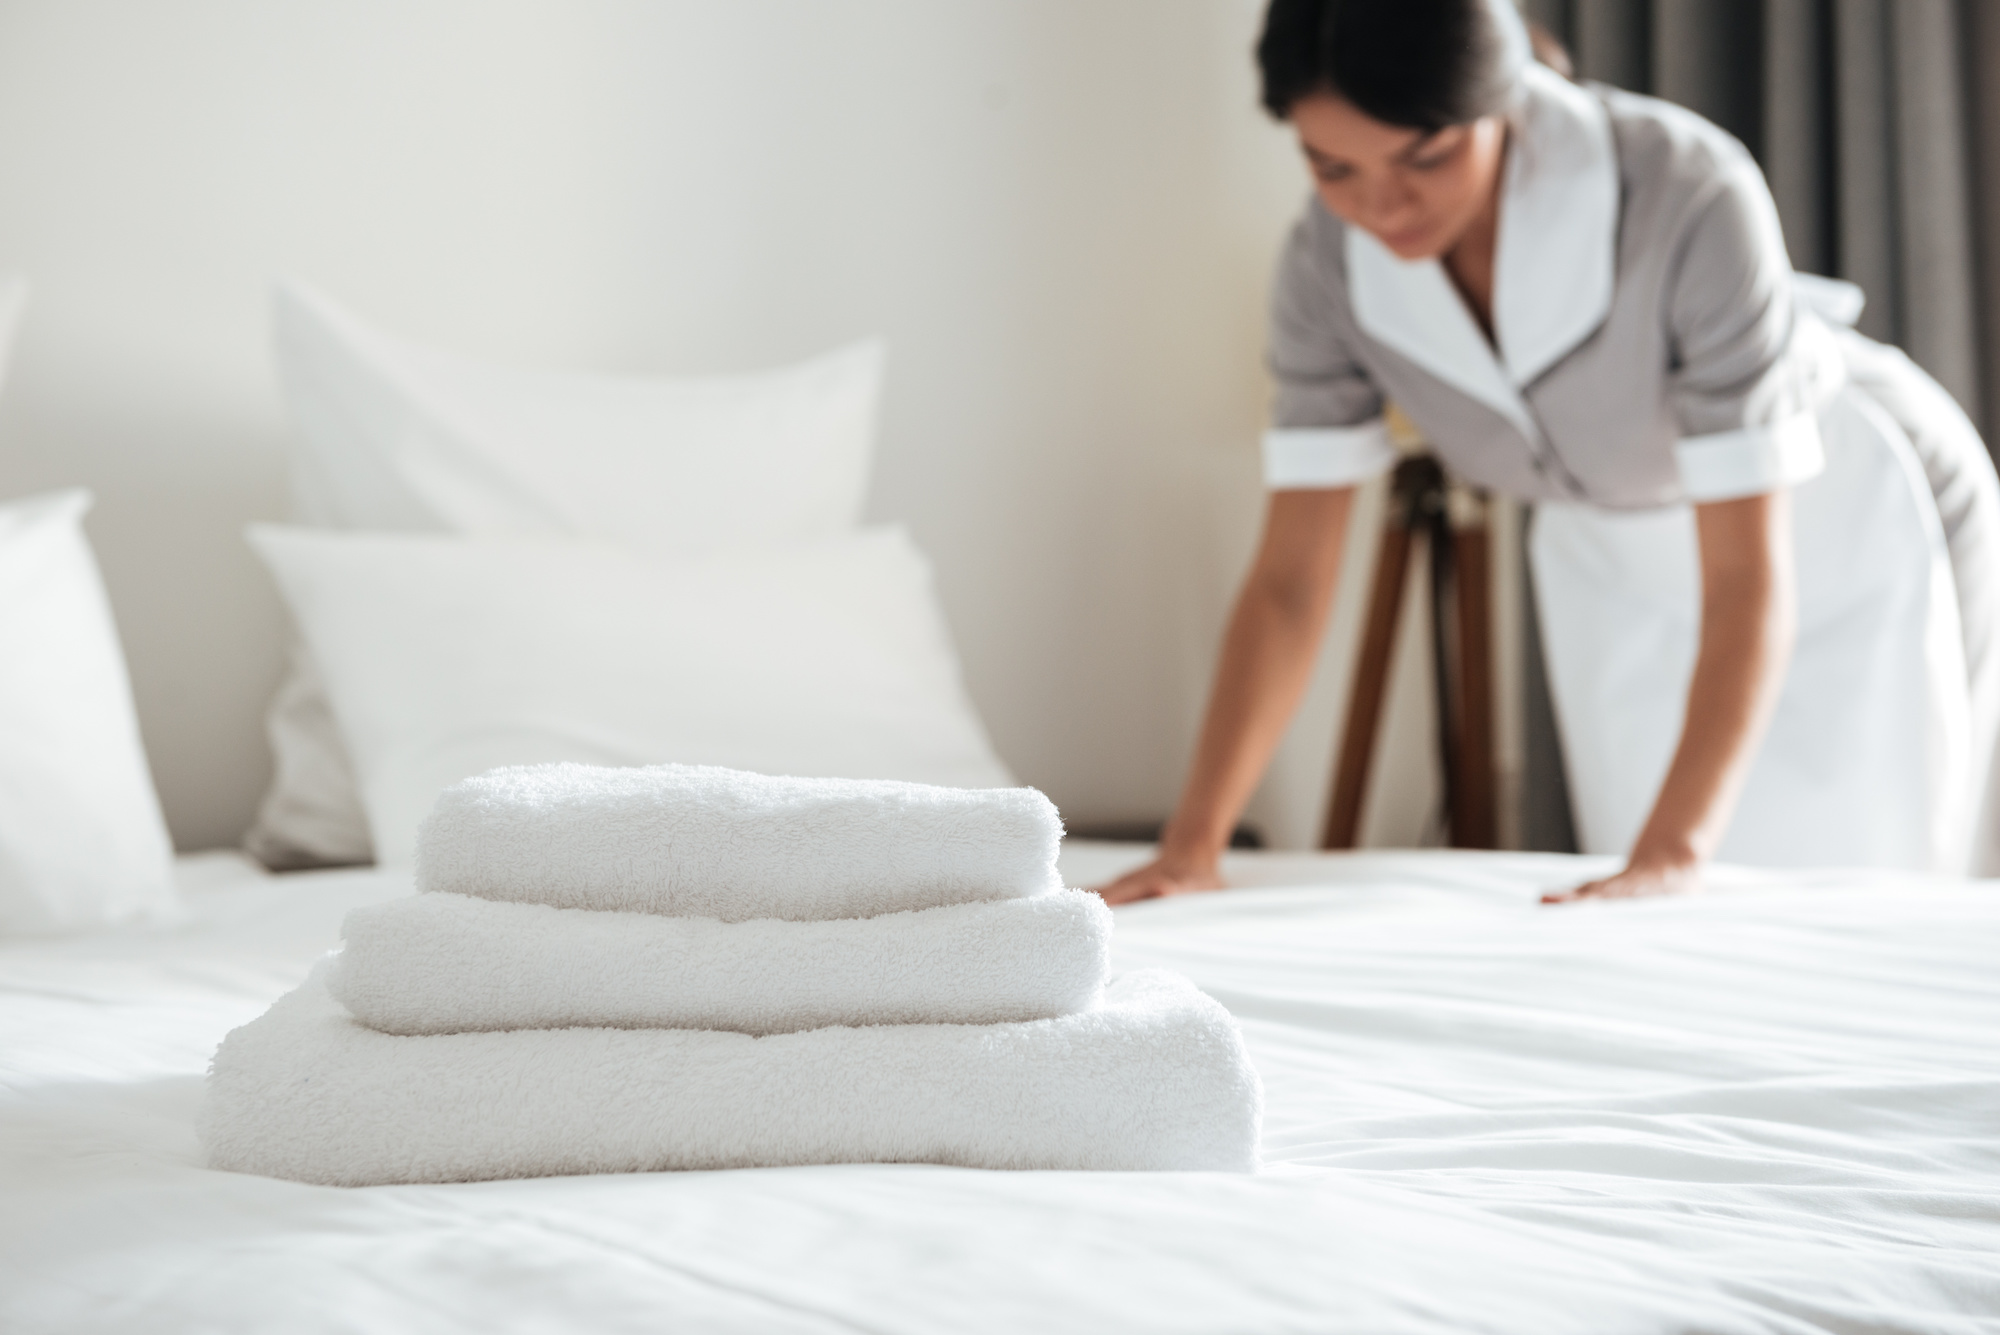 Housekeeping making a bed in a hotel